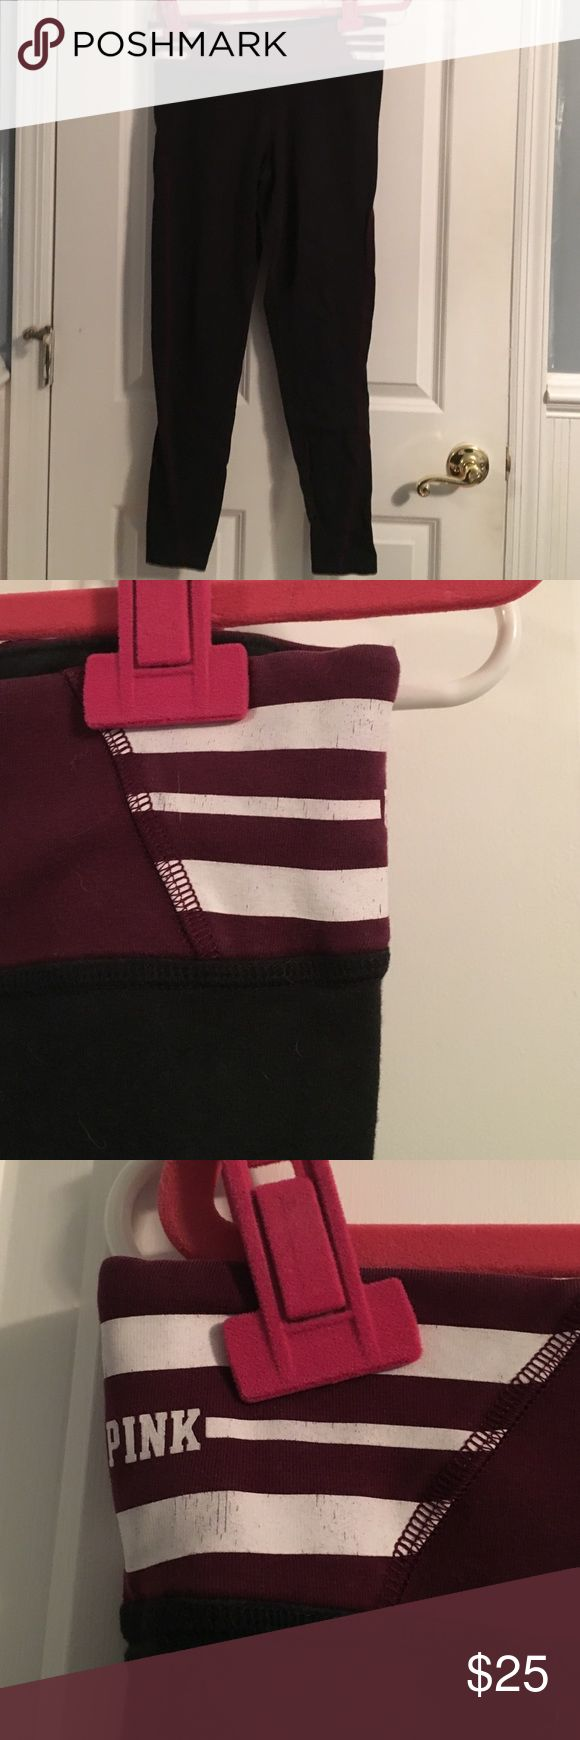 PINK yoga pants PINK yoga pants, burgundy stripe on band, with pocket for credit card/id PINK Victoria's Secret Pants